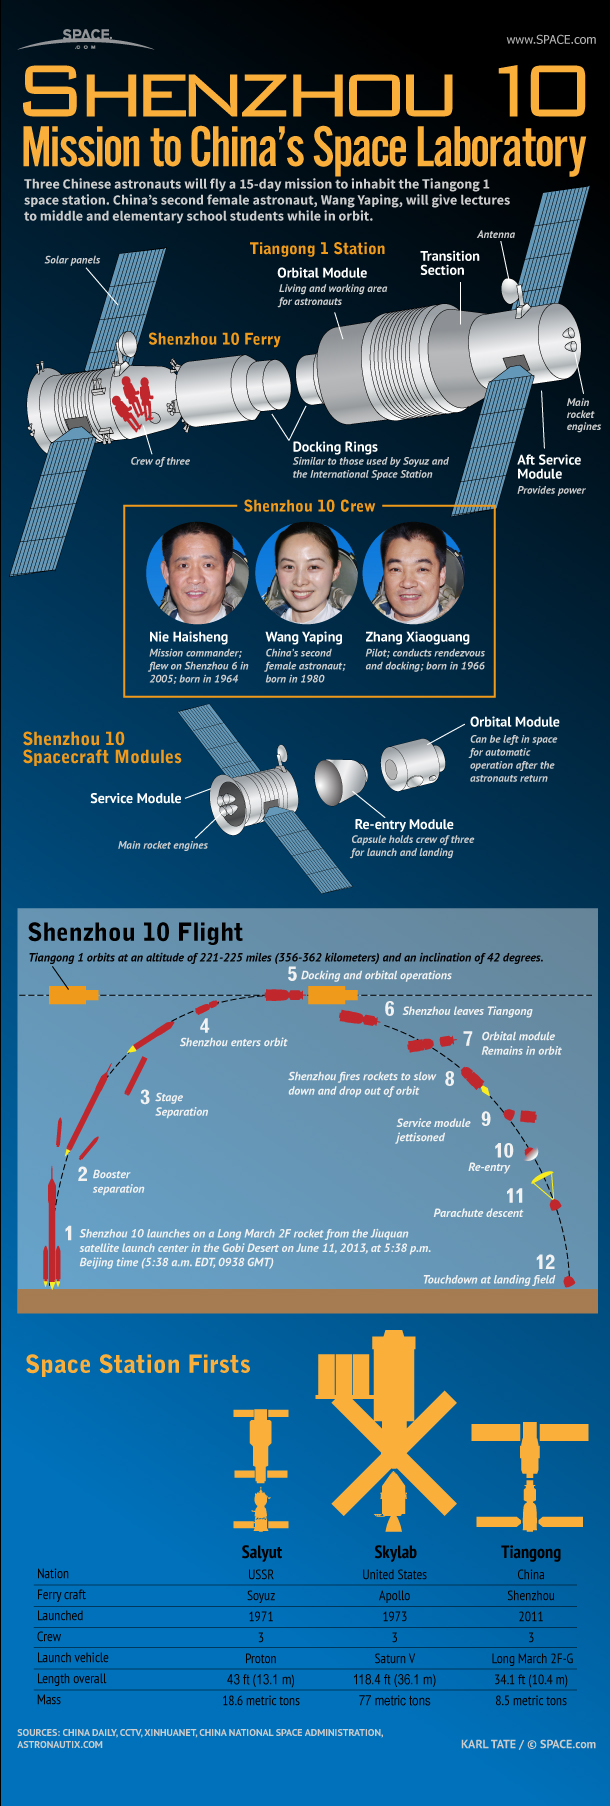 Shenzhou 10 Explained: Chinese Astronauts Head to Space Lab (Infographic)